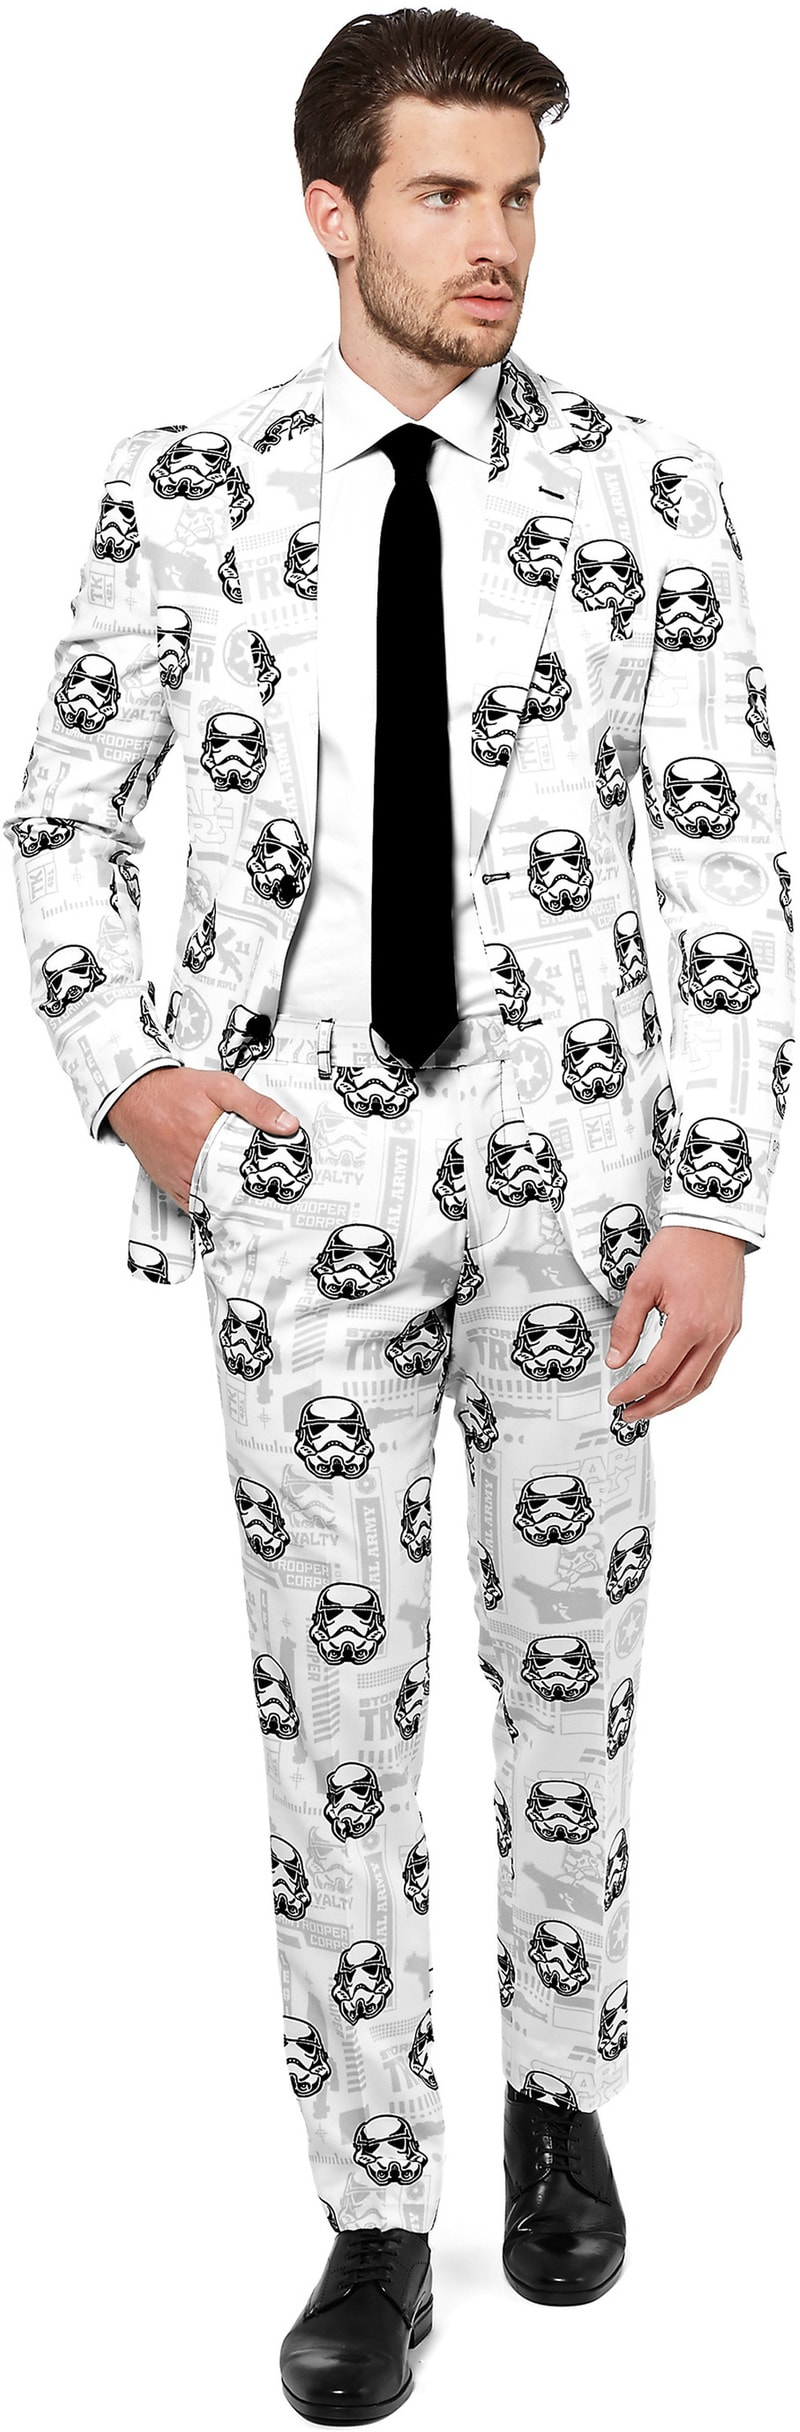 OppoSuits Stormtrooper Suit photo 0